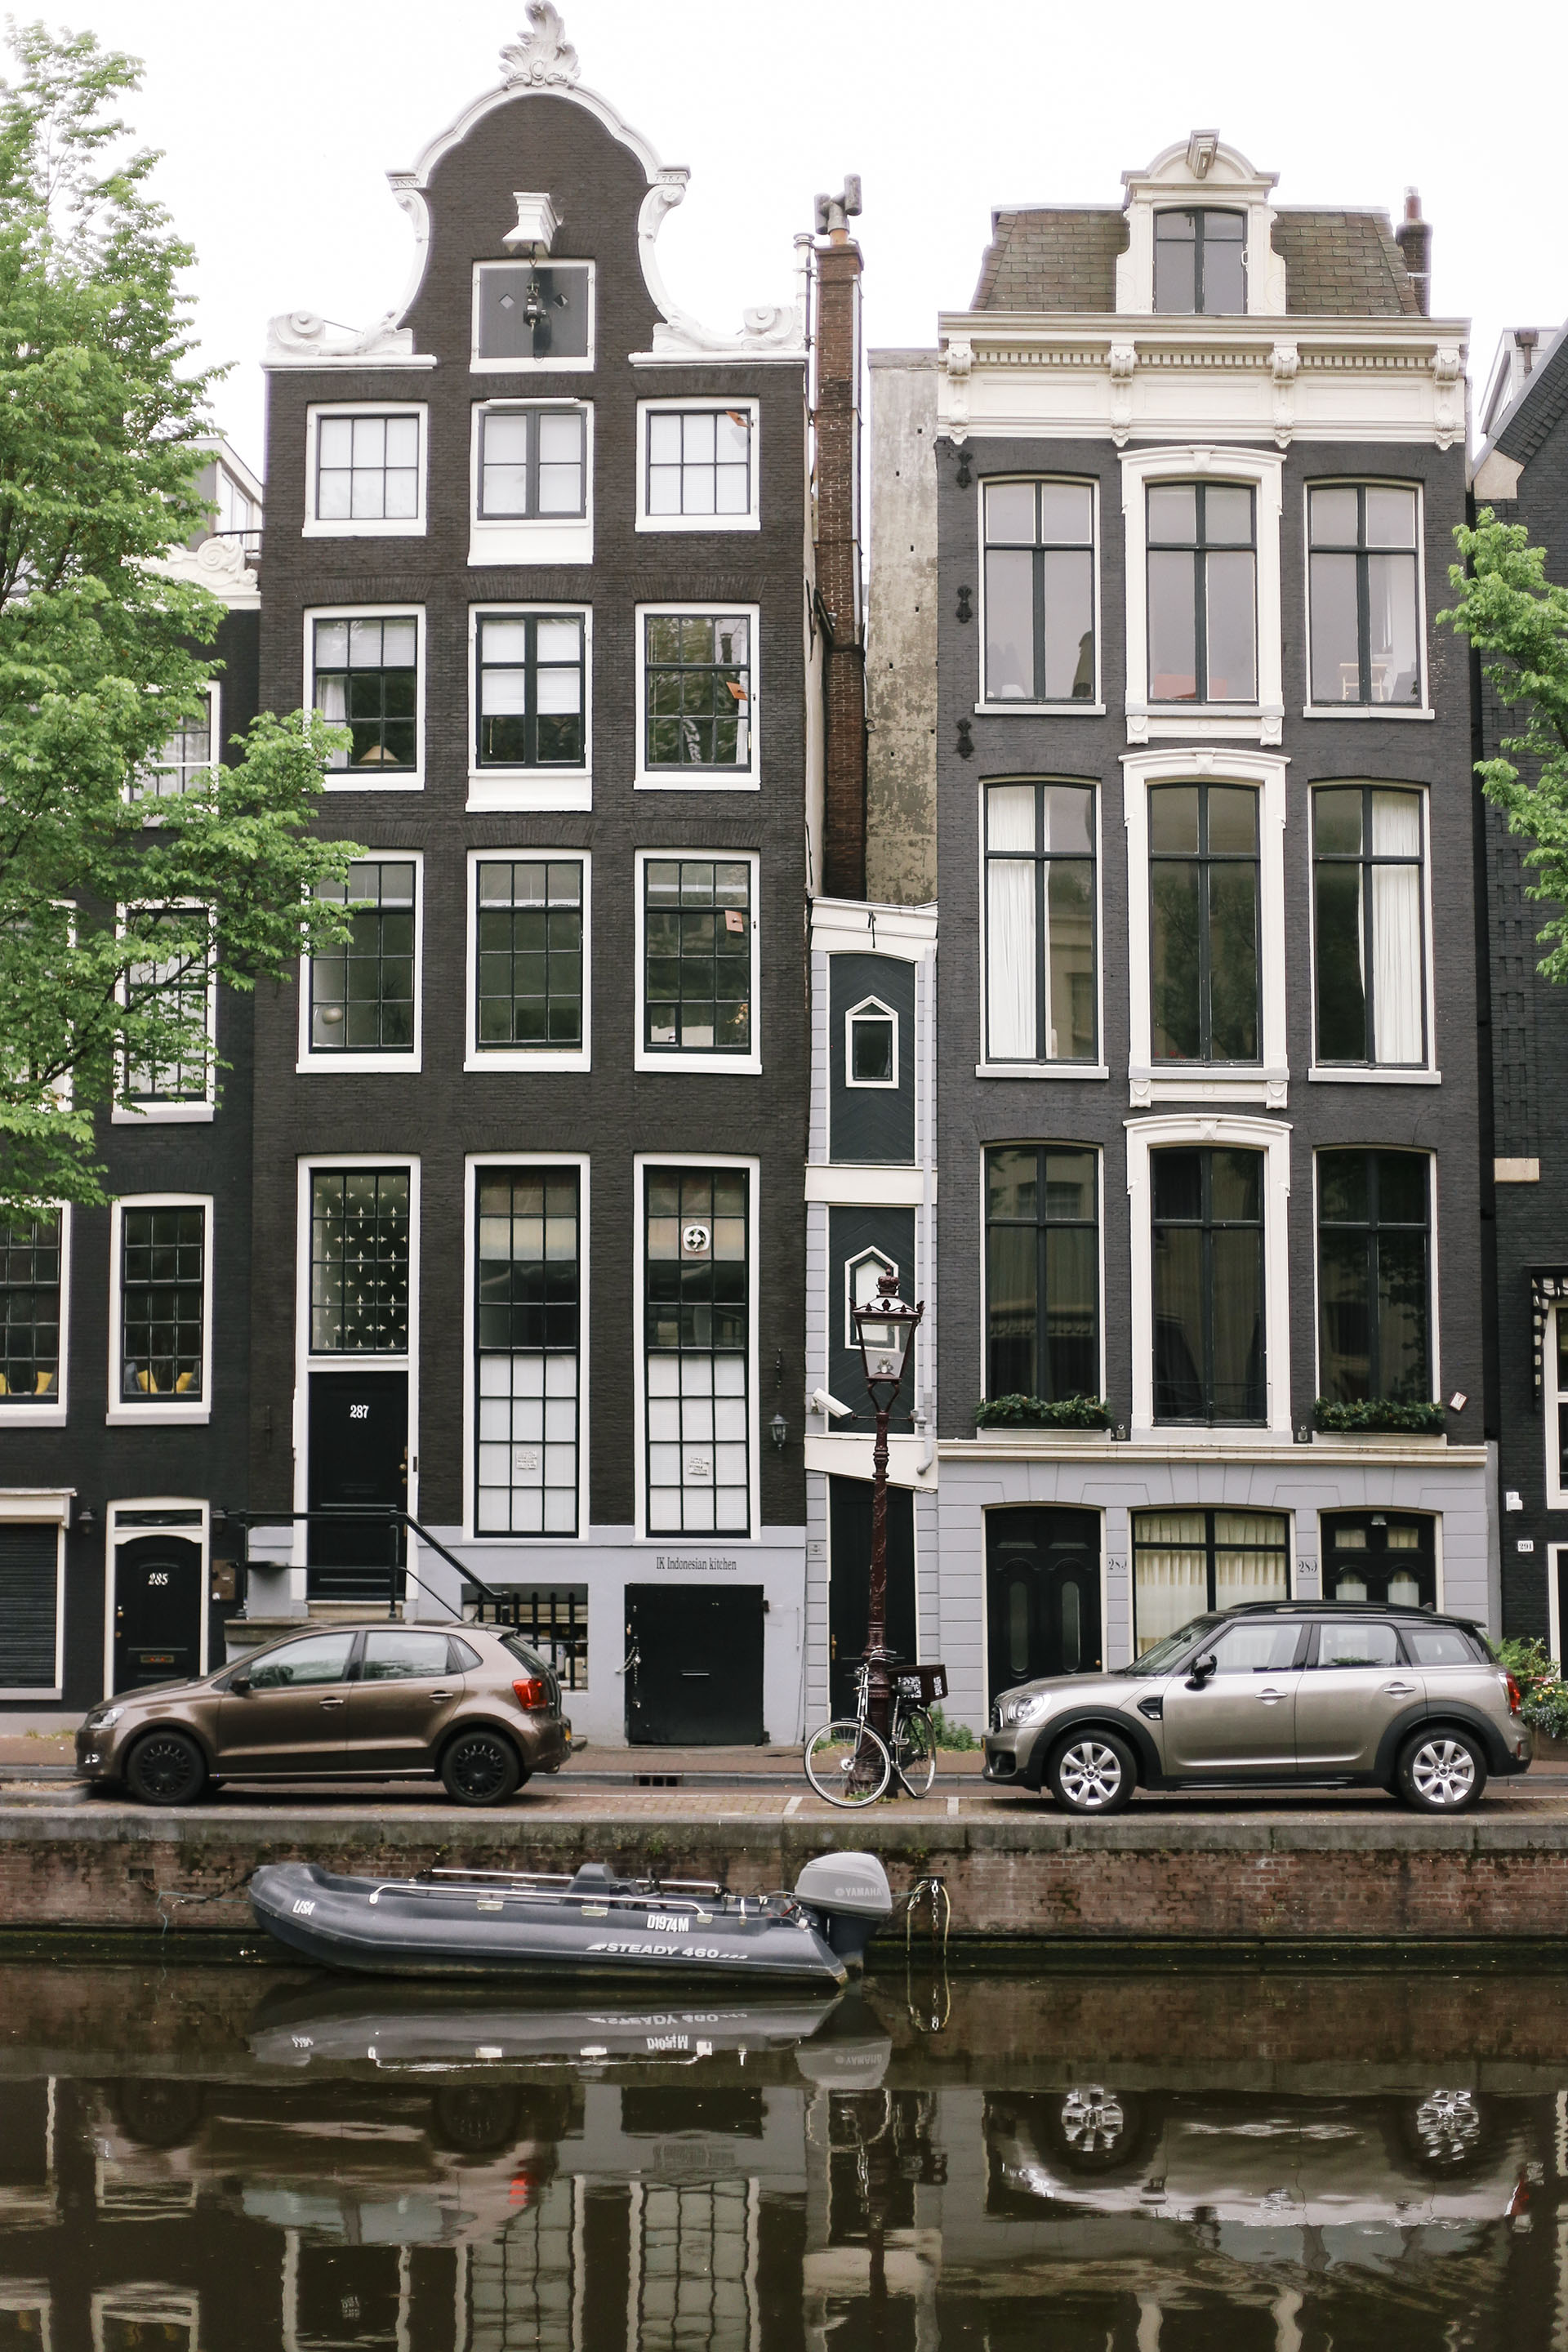 Amsterdam's smallest house